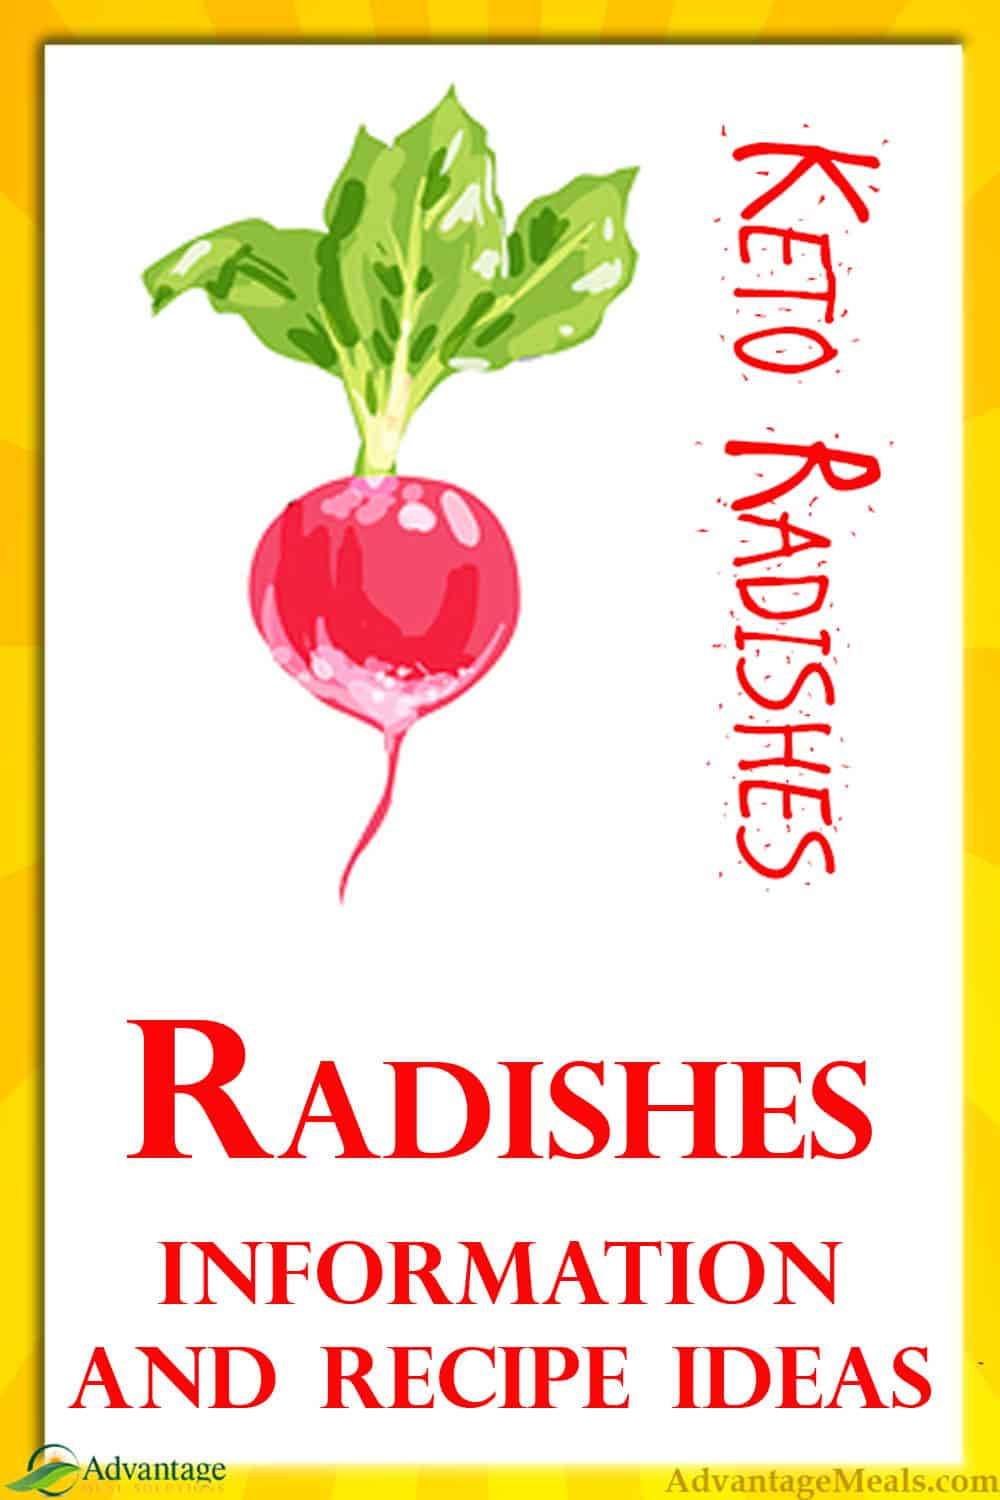 Radishes are a great Keto Friendly Vegetable.  With only 0.1 carb per medium radish and other hard to get nutrients, you should be finding ways to add more radishes to your keto diet.  My favorite ways to eat radishes and more information on this keto super vegetable. ~ Angela of @AdvantageMeals #Radishes #Radish